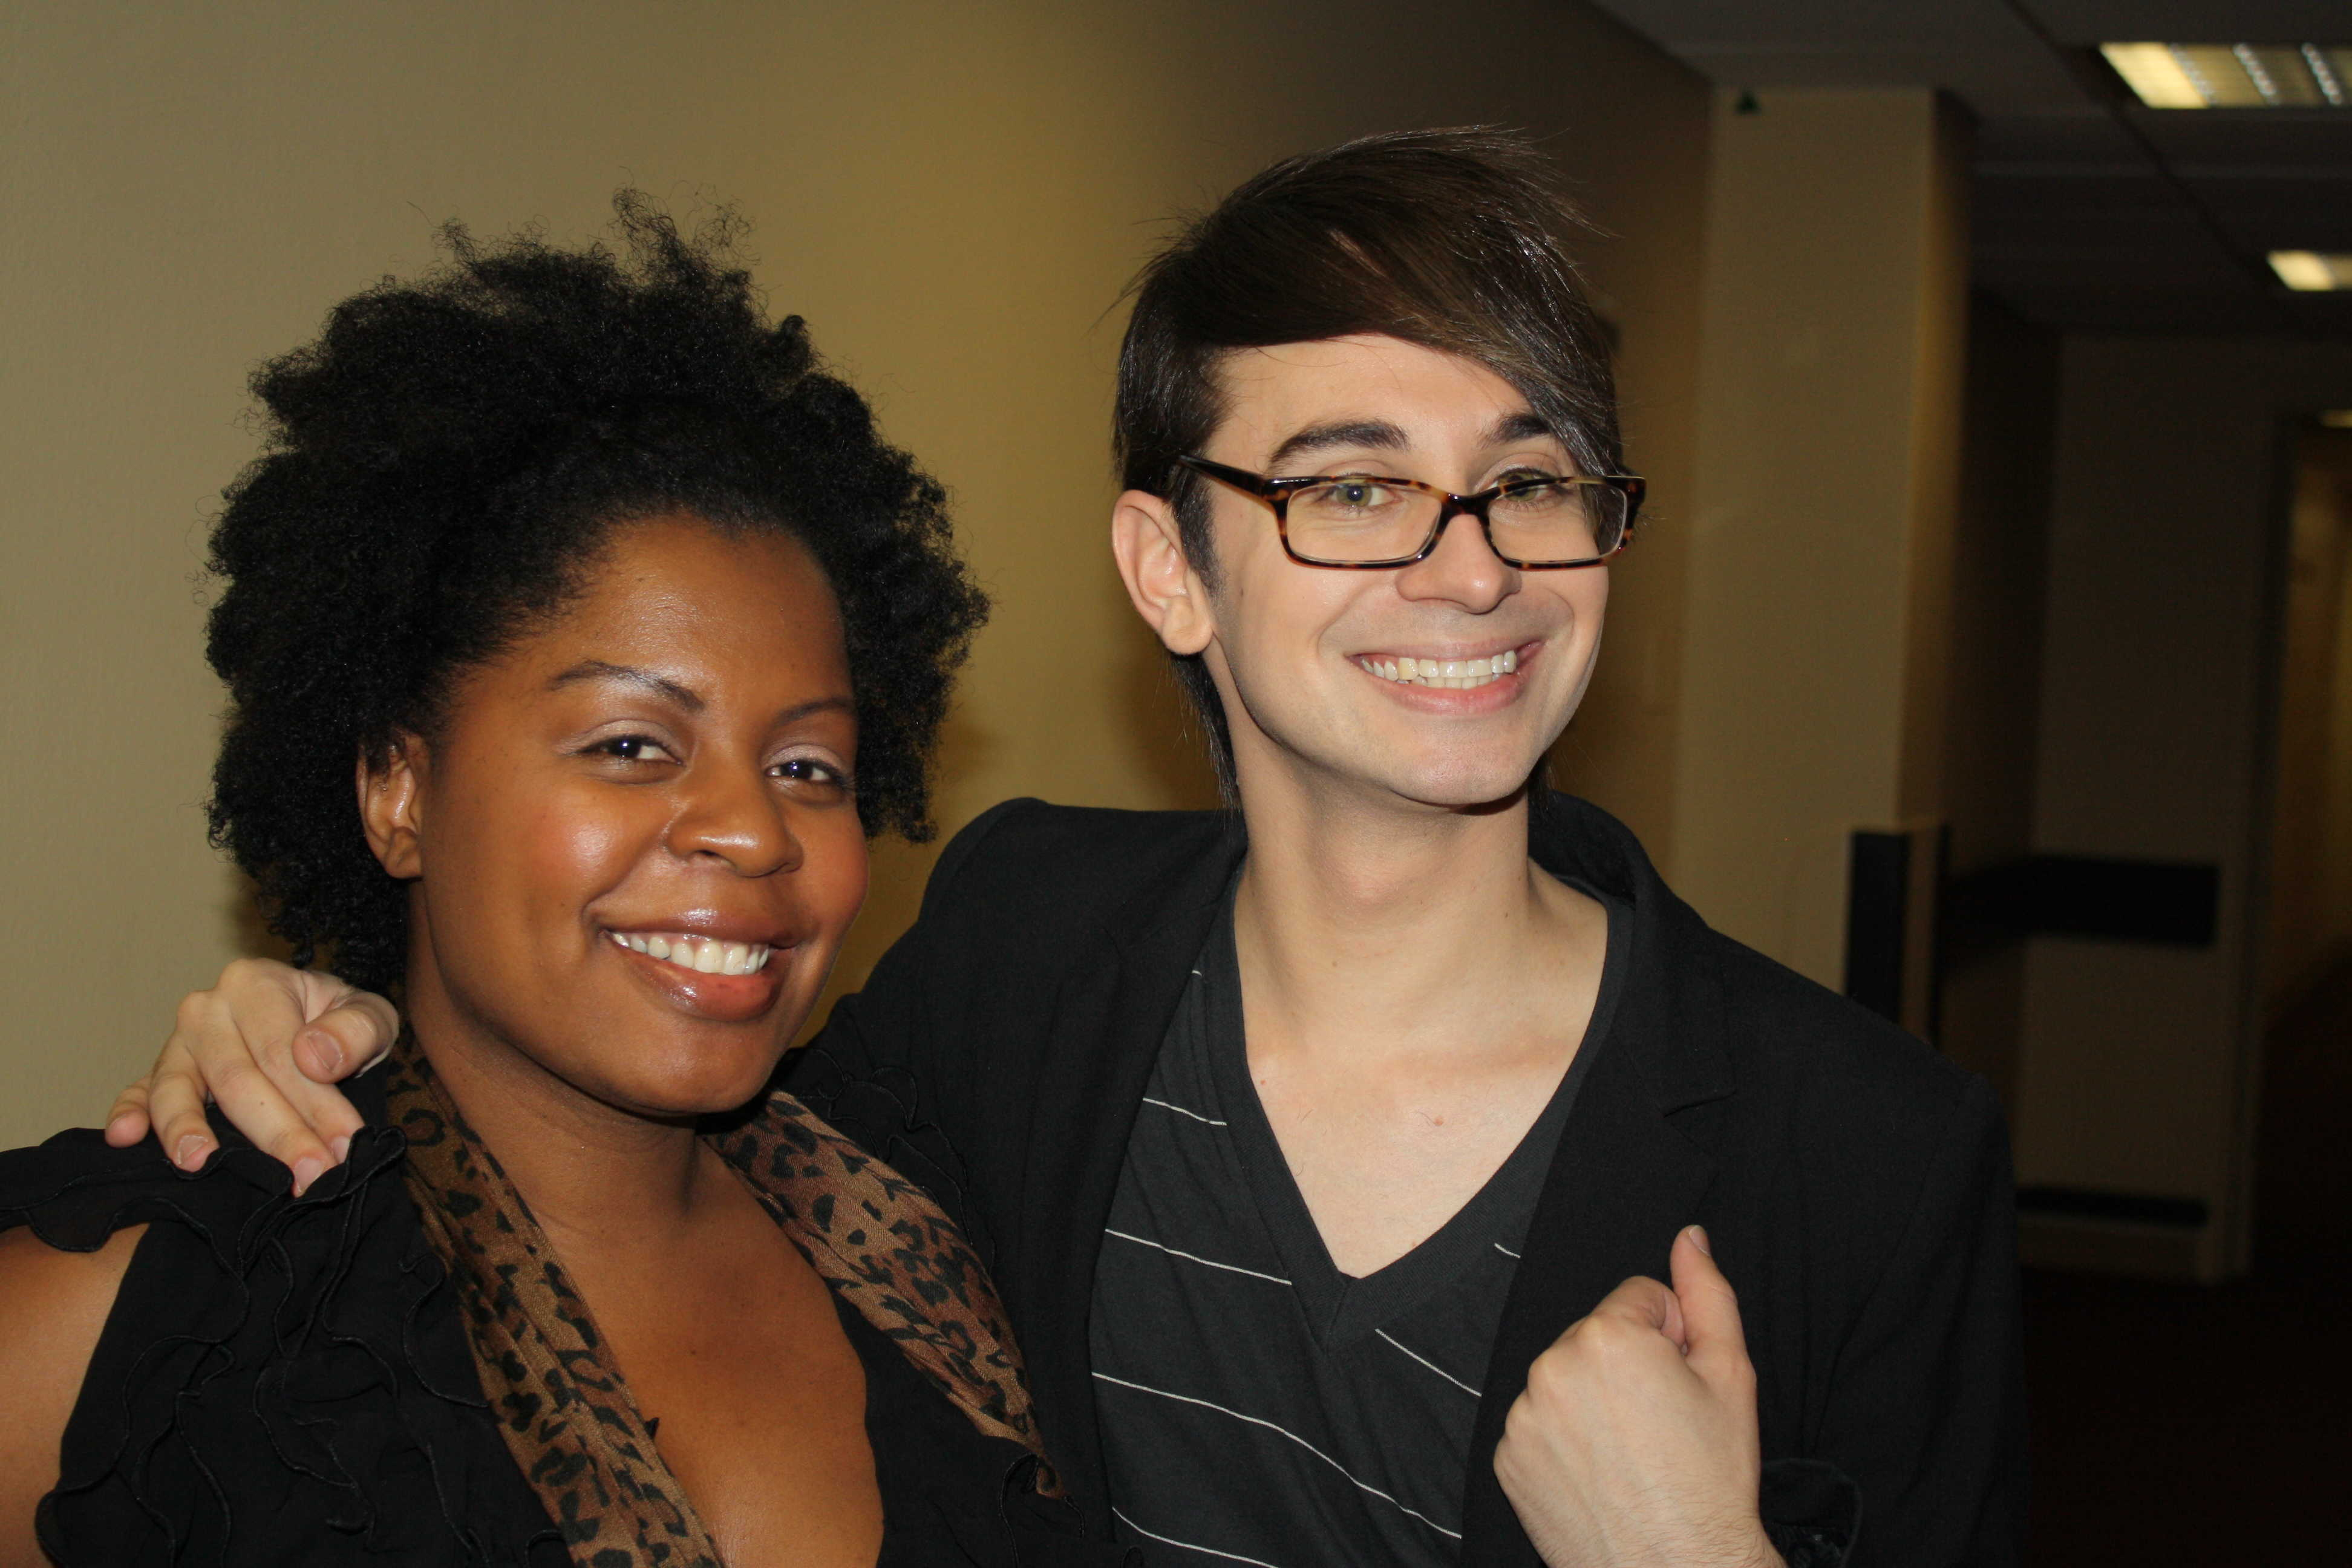 The look for less with Christian Siriano and Nate Berkus